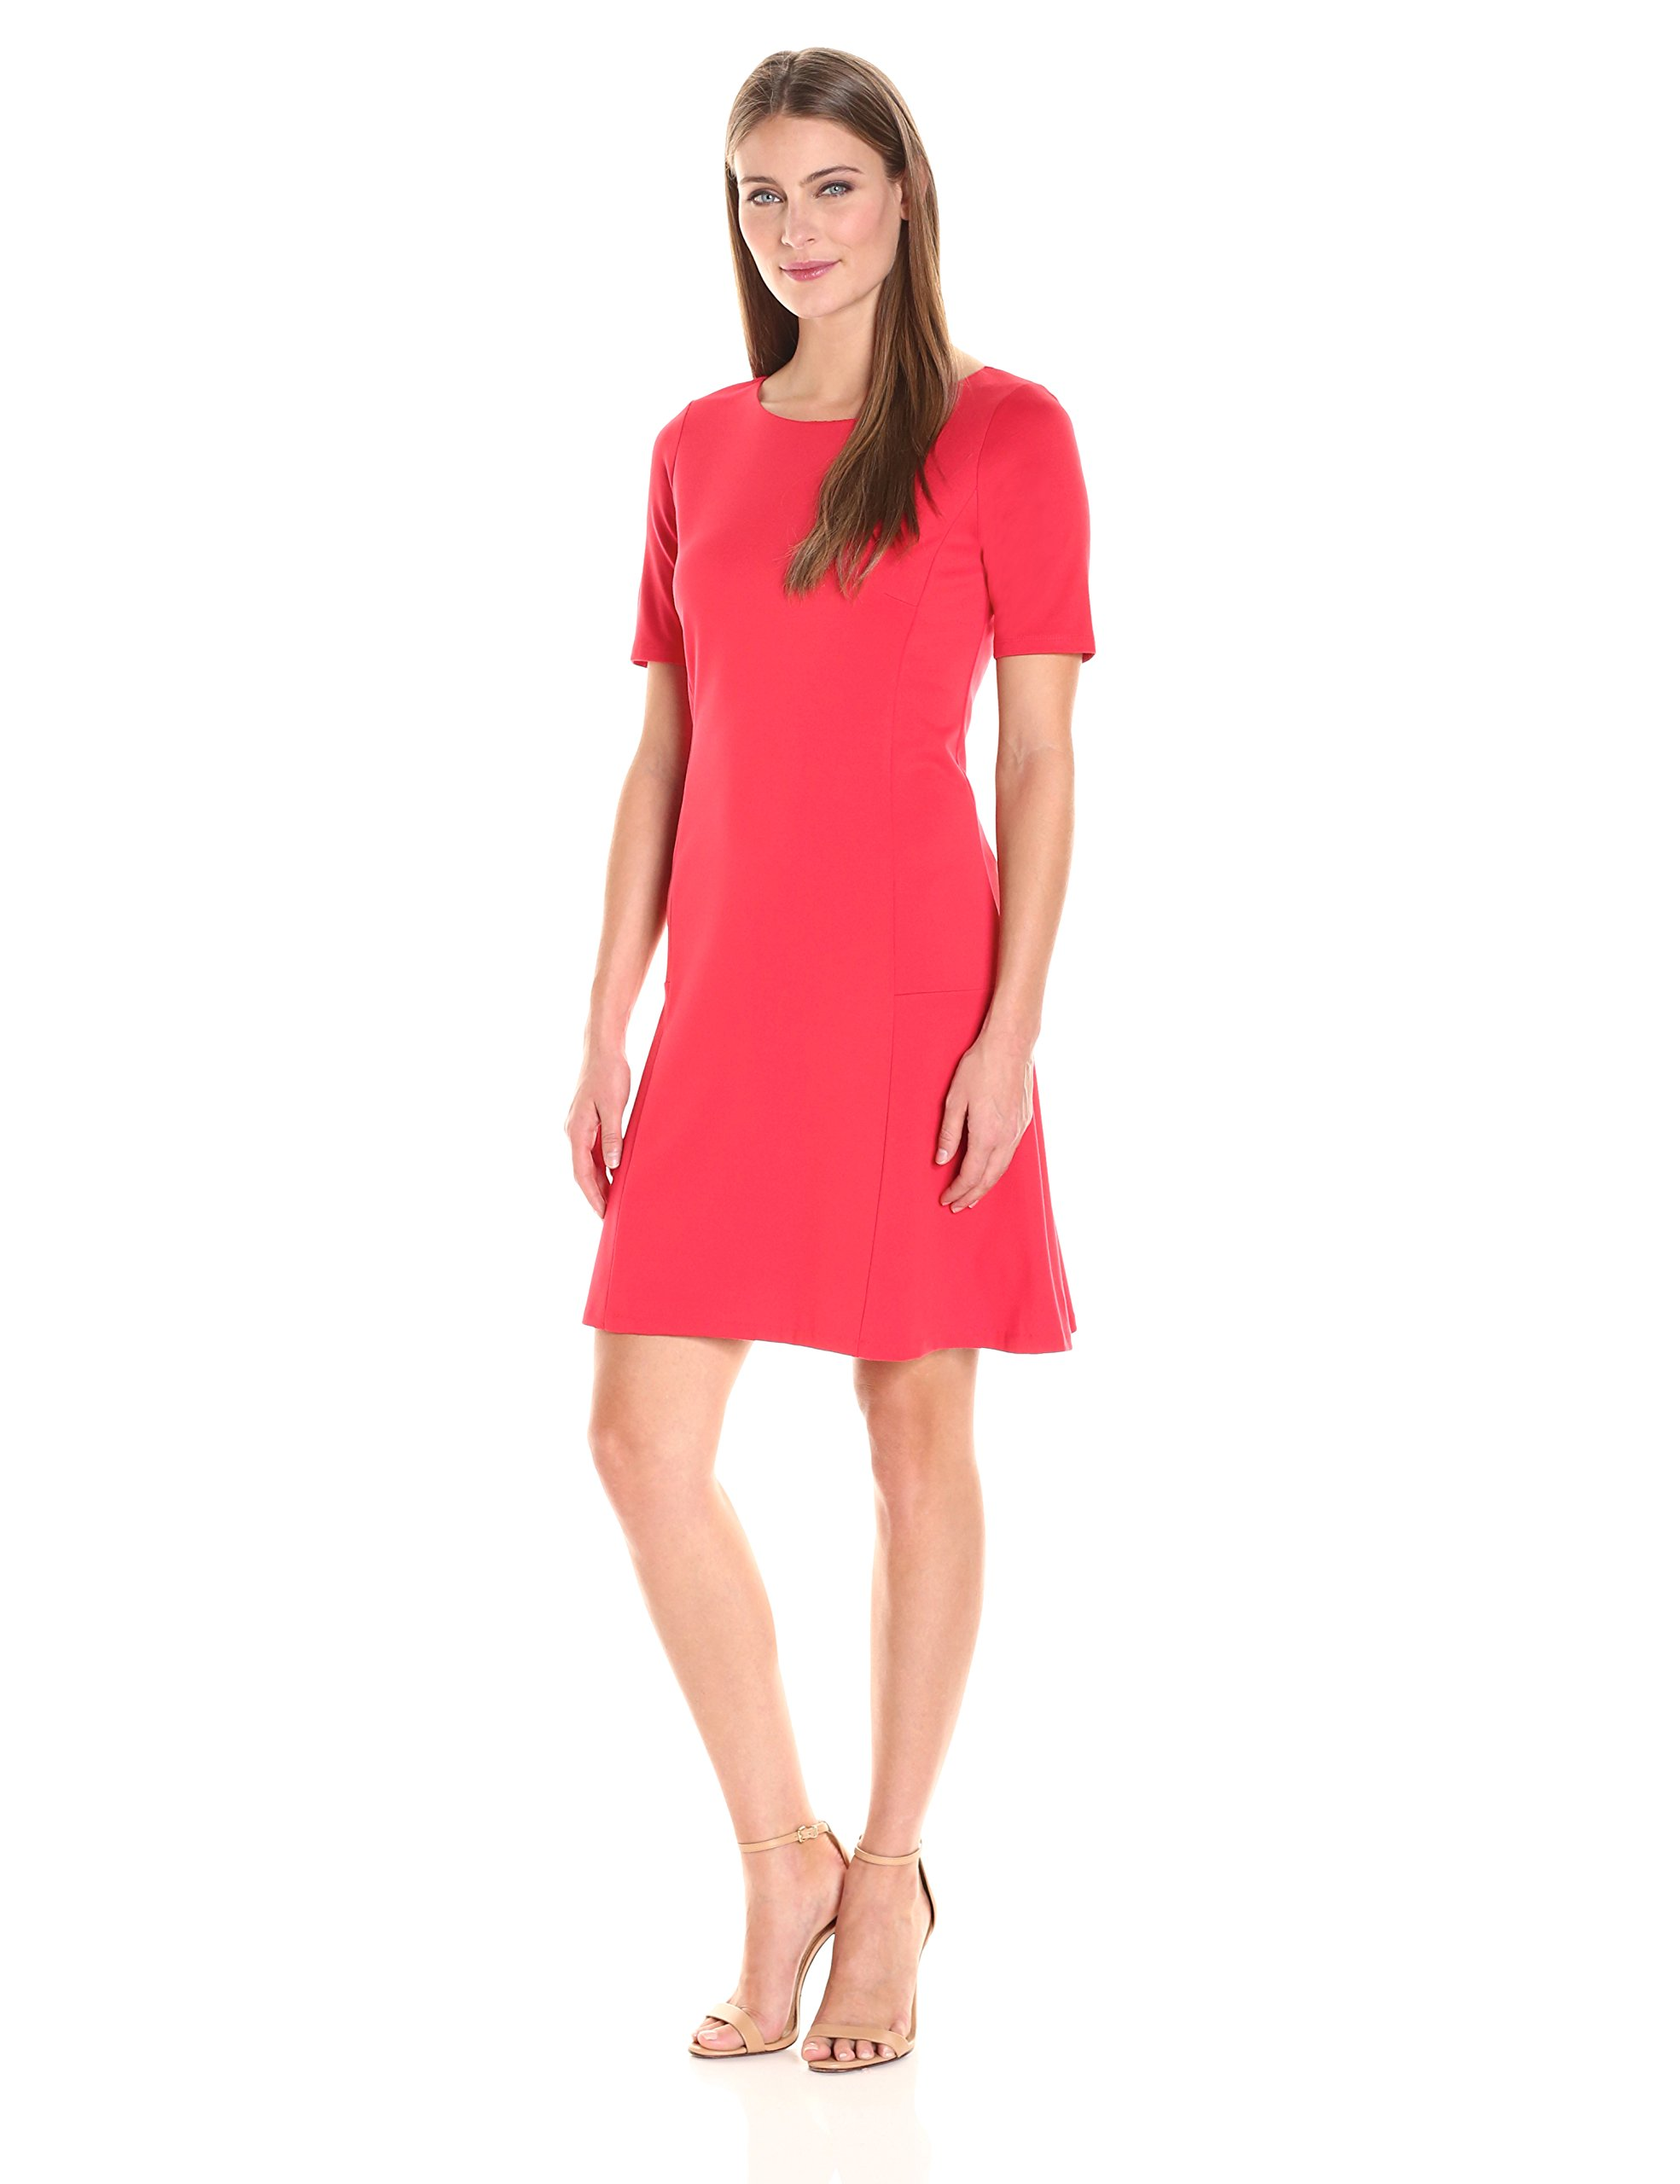 Ellen Tracy Women's Size Elbow Sleeve Flounce Dress, Tomato Red, Petite Small by Ellen Tracy